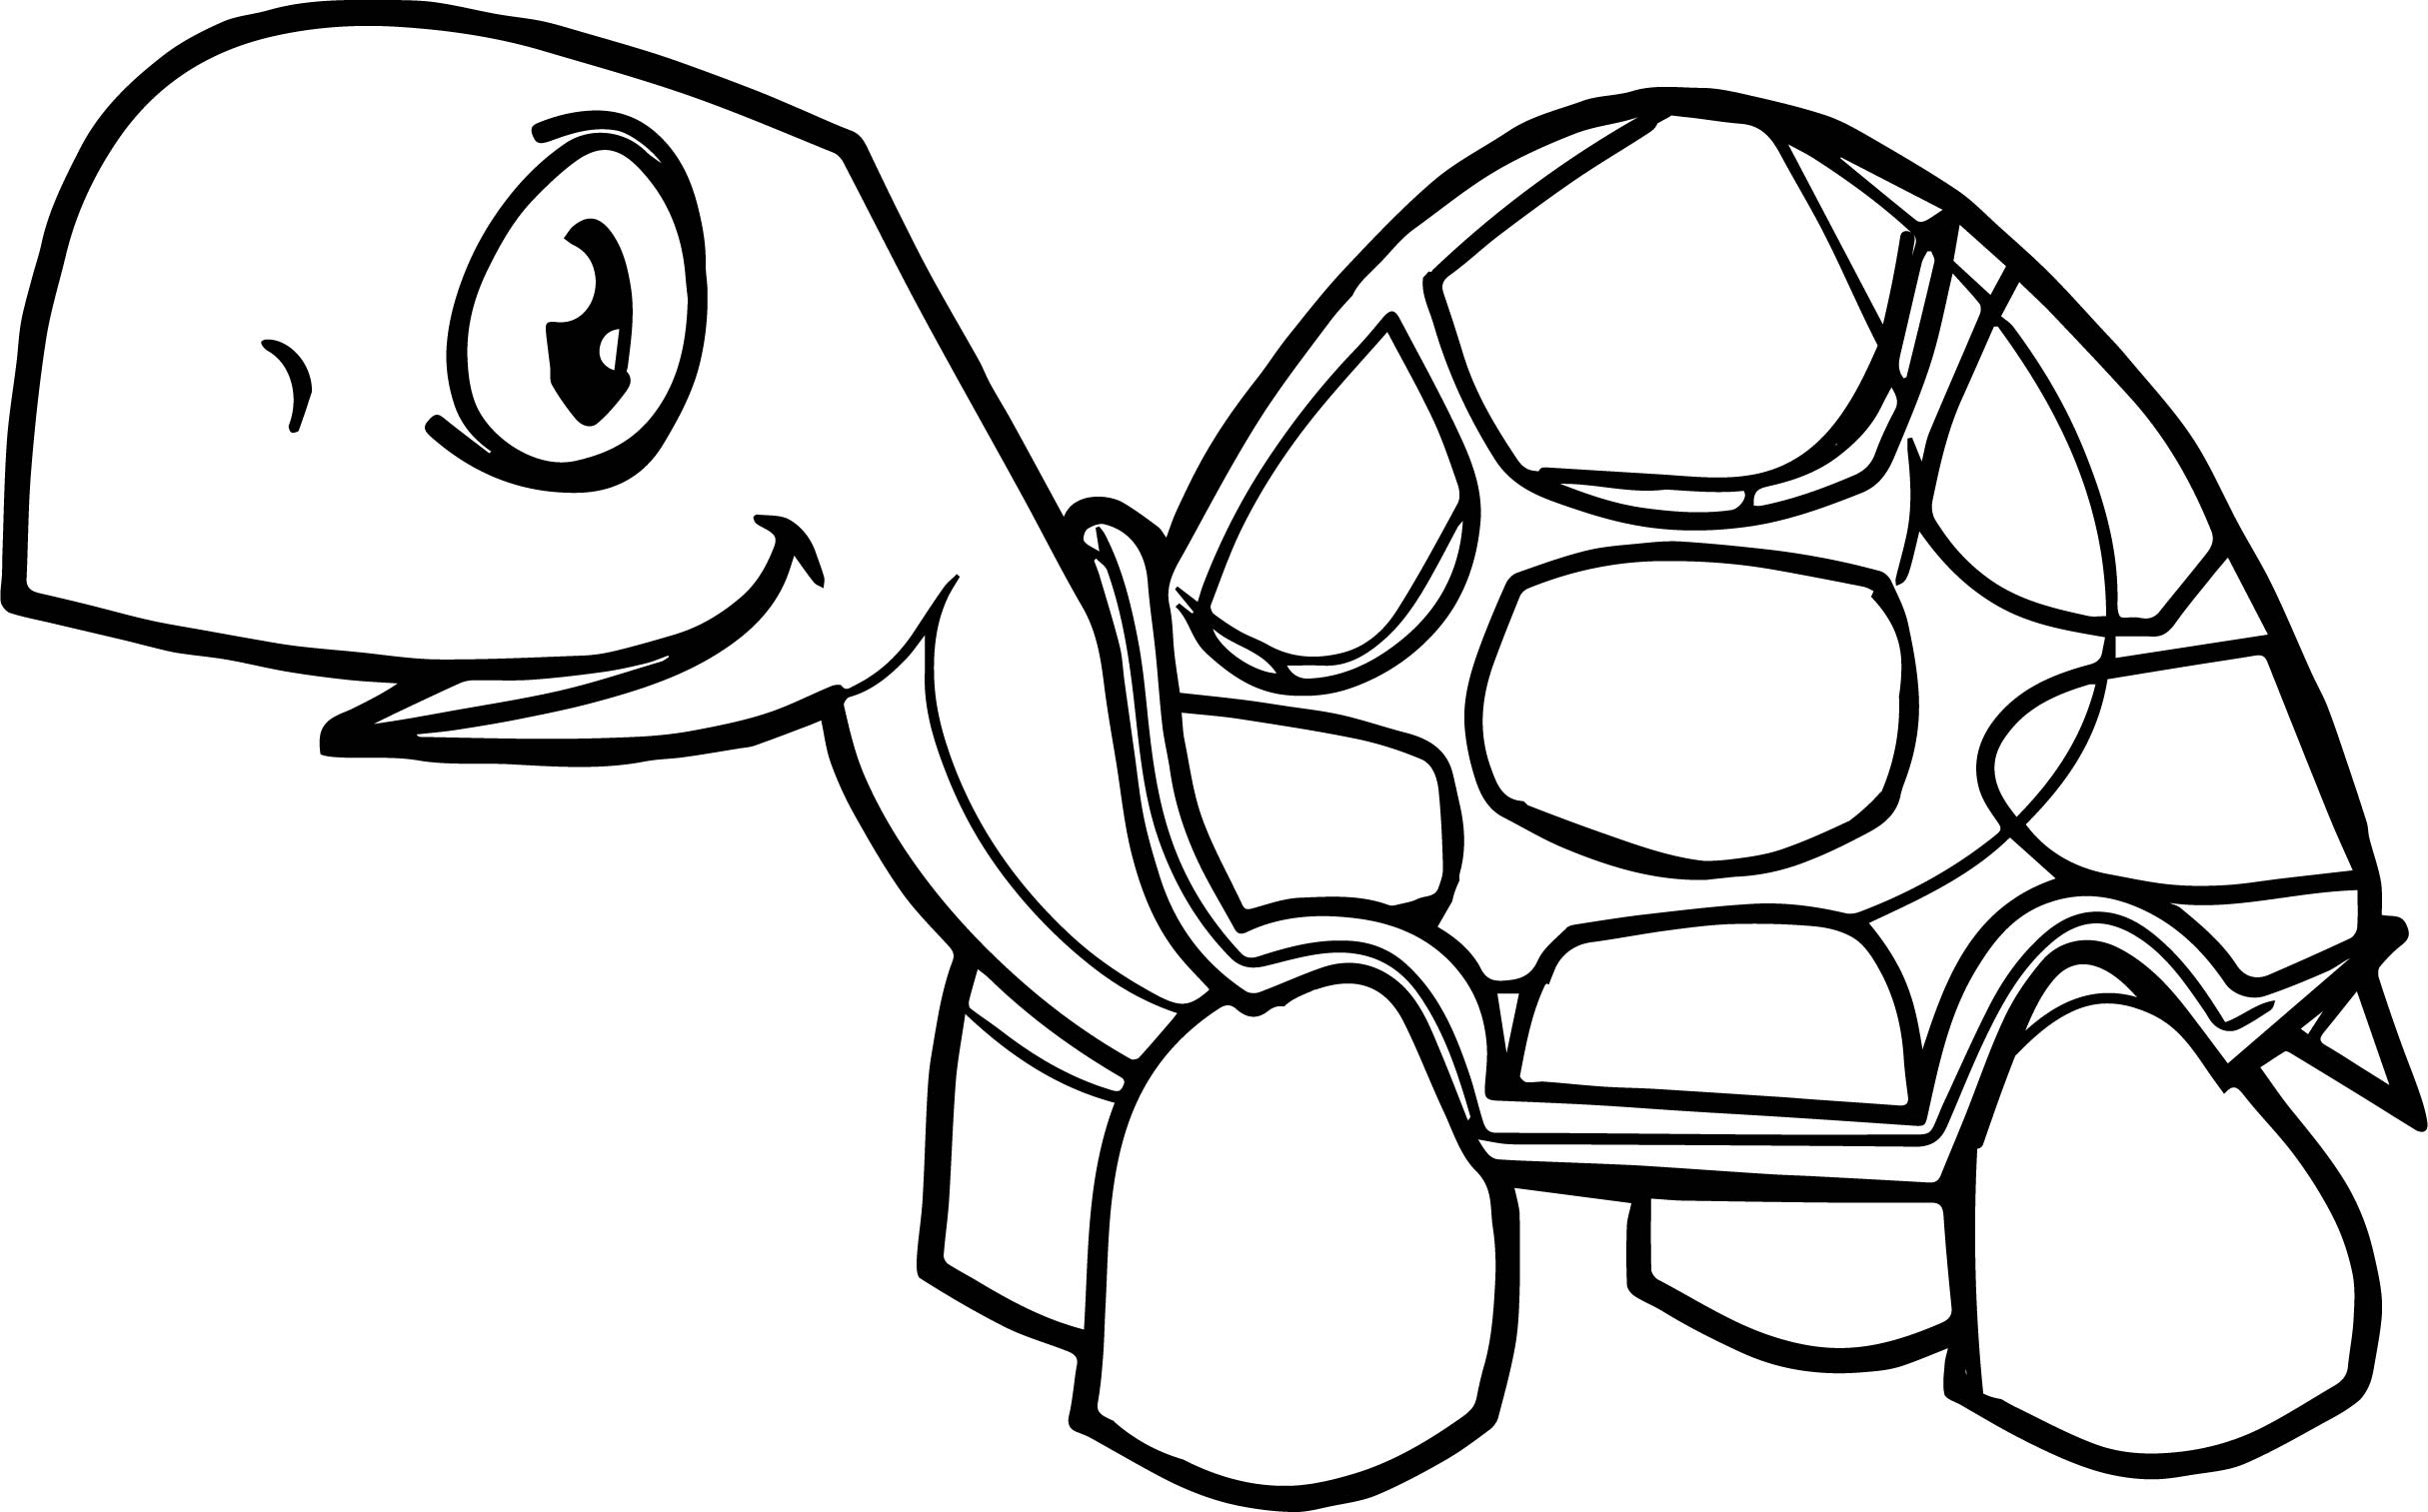 tortoise turtle smile coloring page wecoloringpage